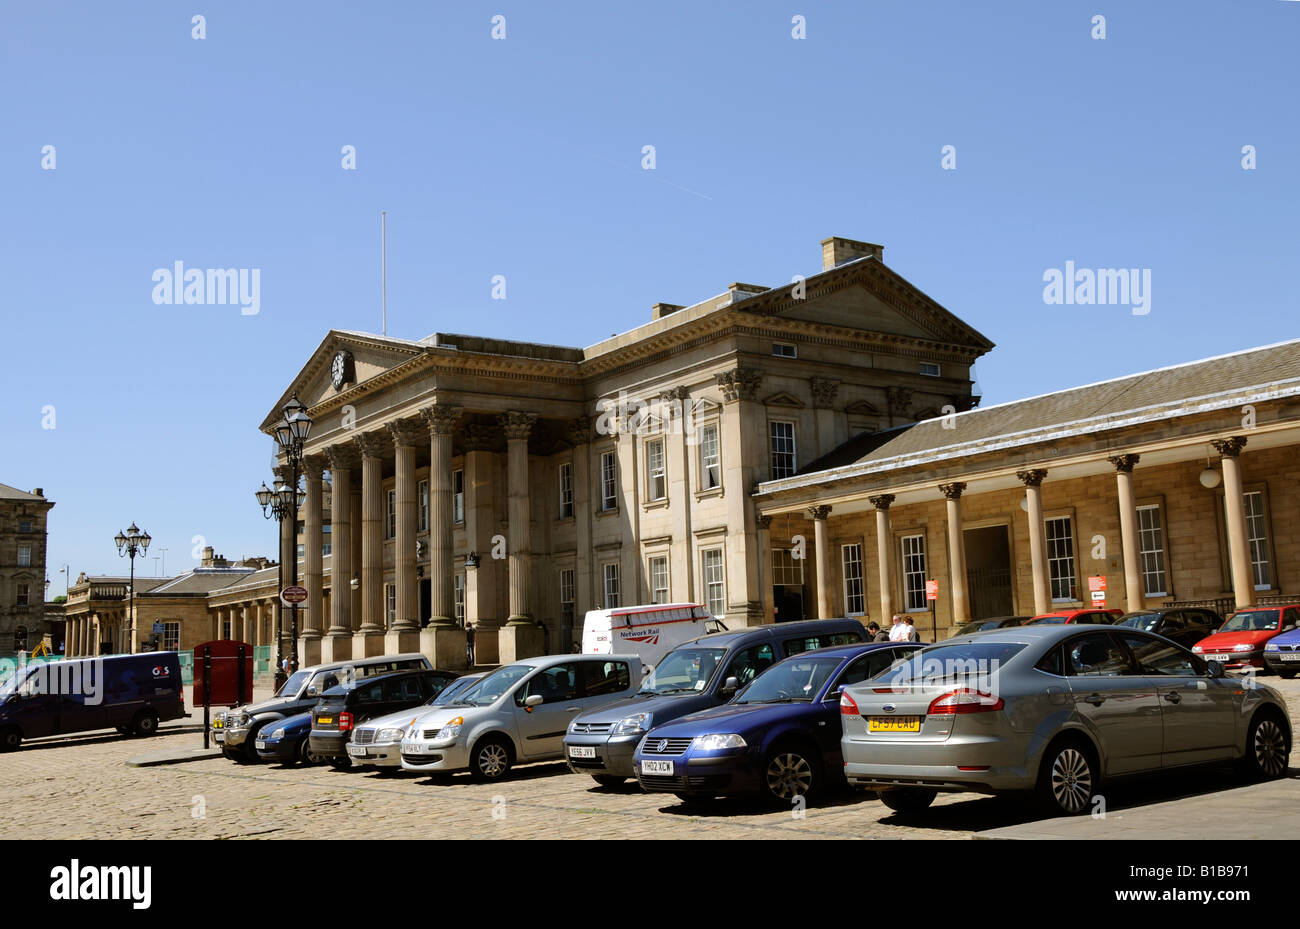 The classical colonnade and portico of the grand entrance of the Victorian railway station in Huddersfield - Stock Image